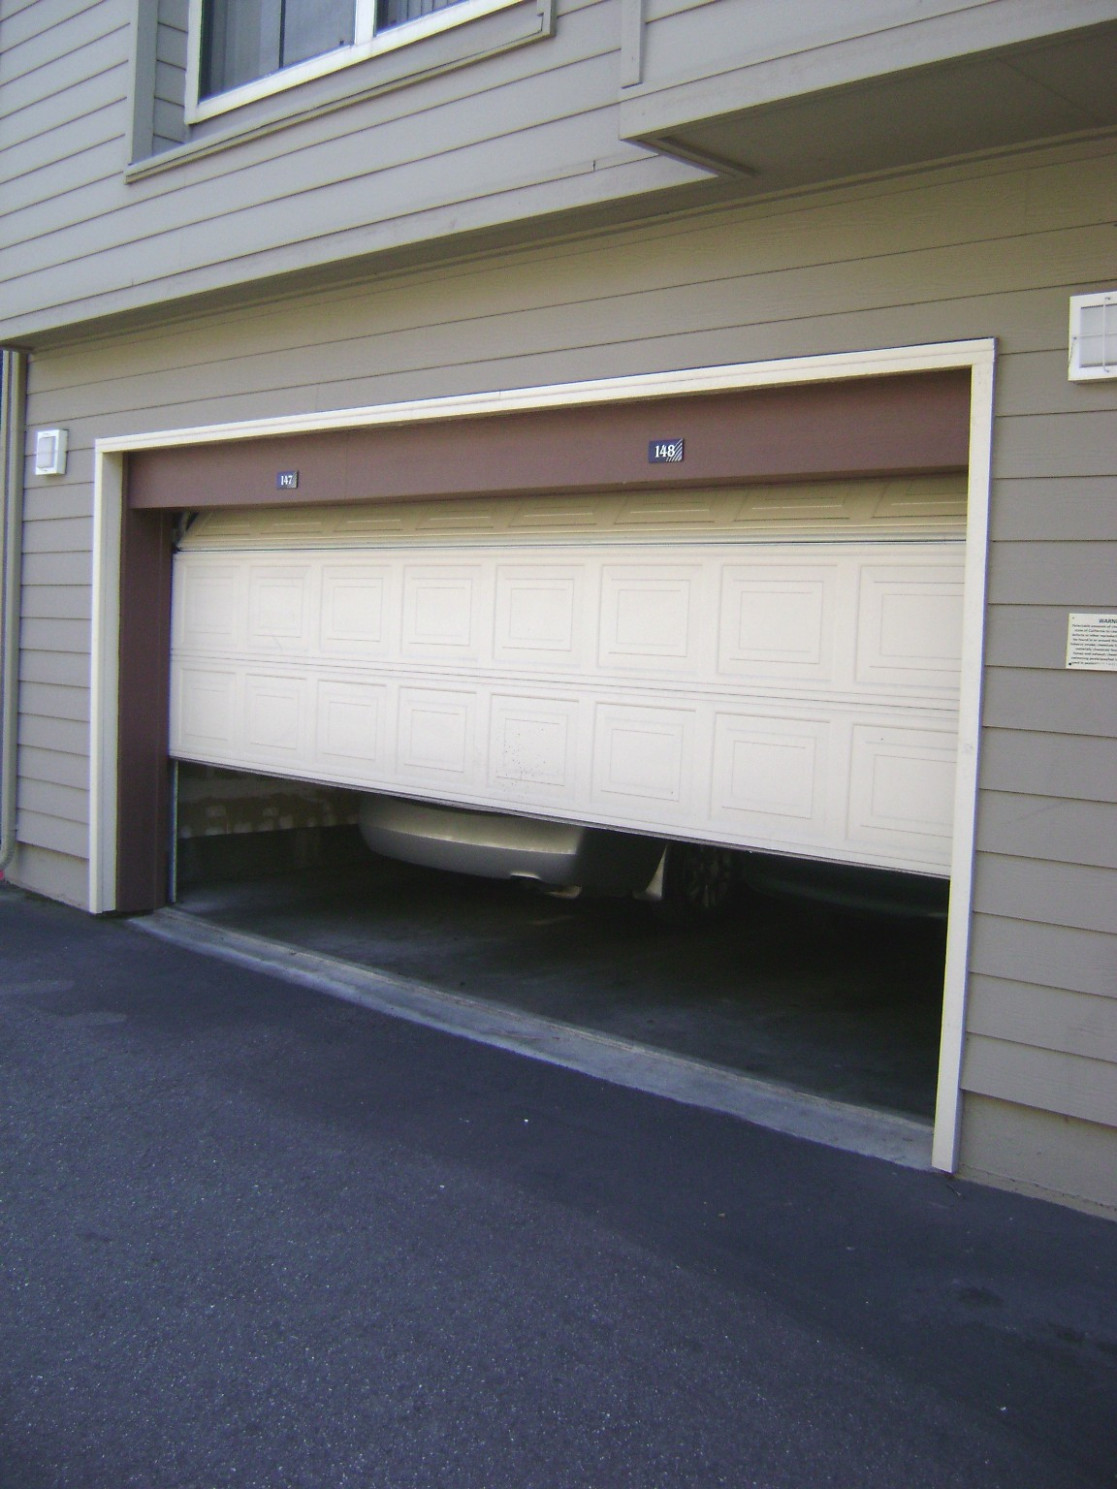 Garage Door Wikipedia Carolina Carport Garage Door Opener